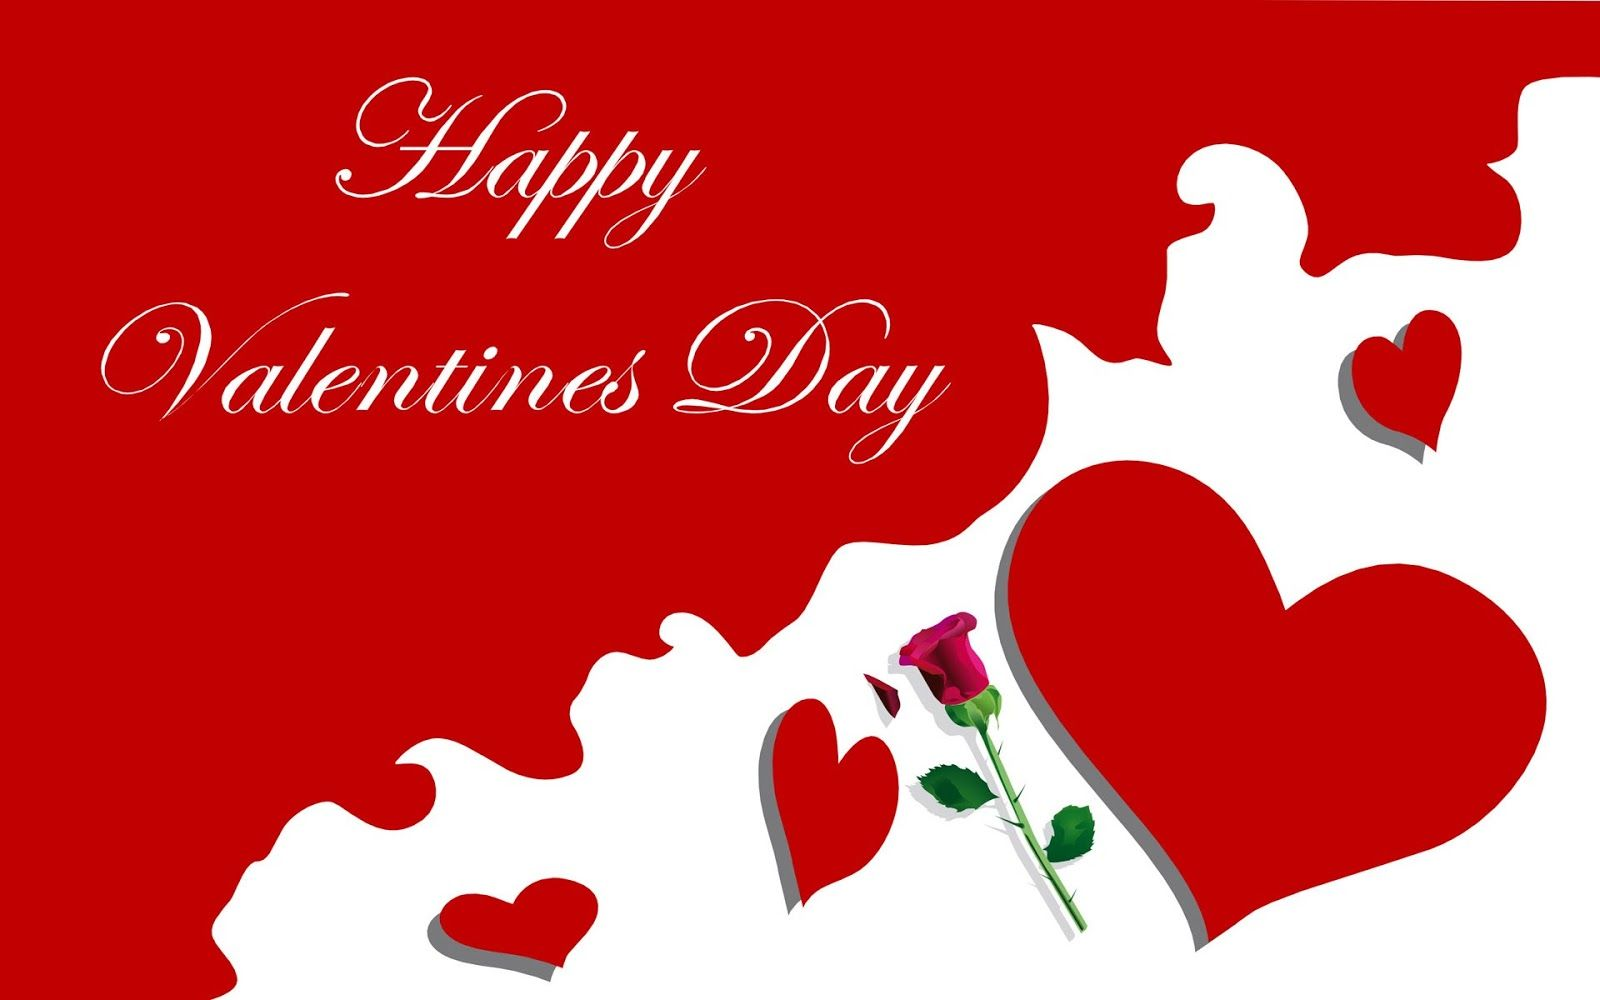 Valentine day greeting happy valentines day 2017 quotesideas get best valentines day 2018 images quotes wishes funny messages greetings and whatsapp status also get hd wallpapers and rare quotes here kristyandbryce Gallery